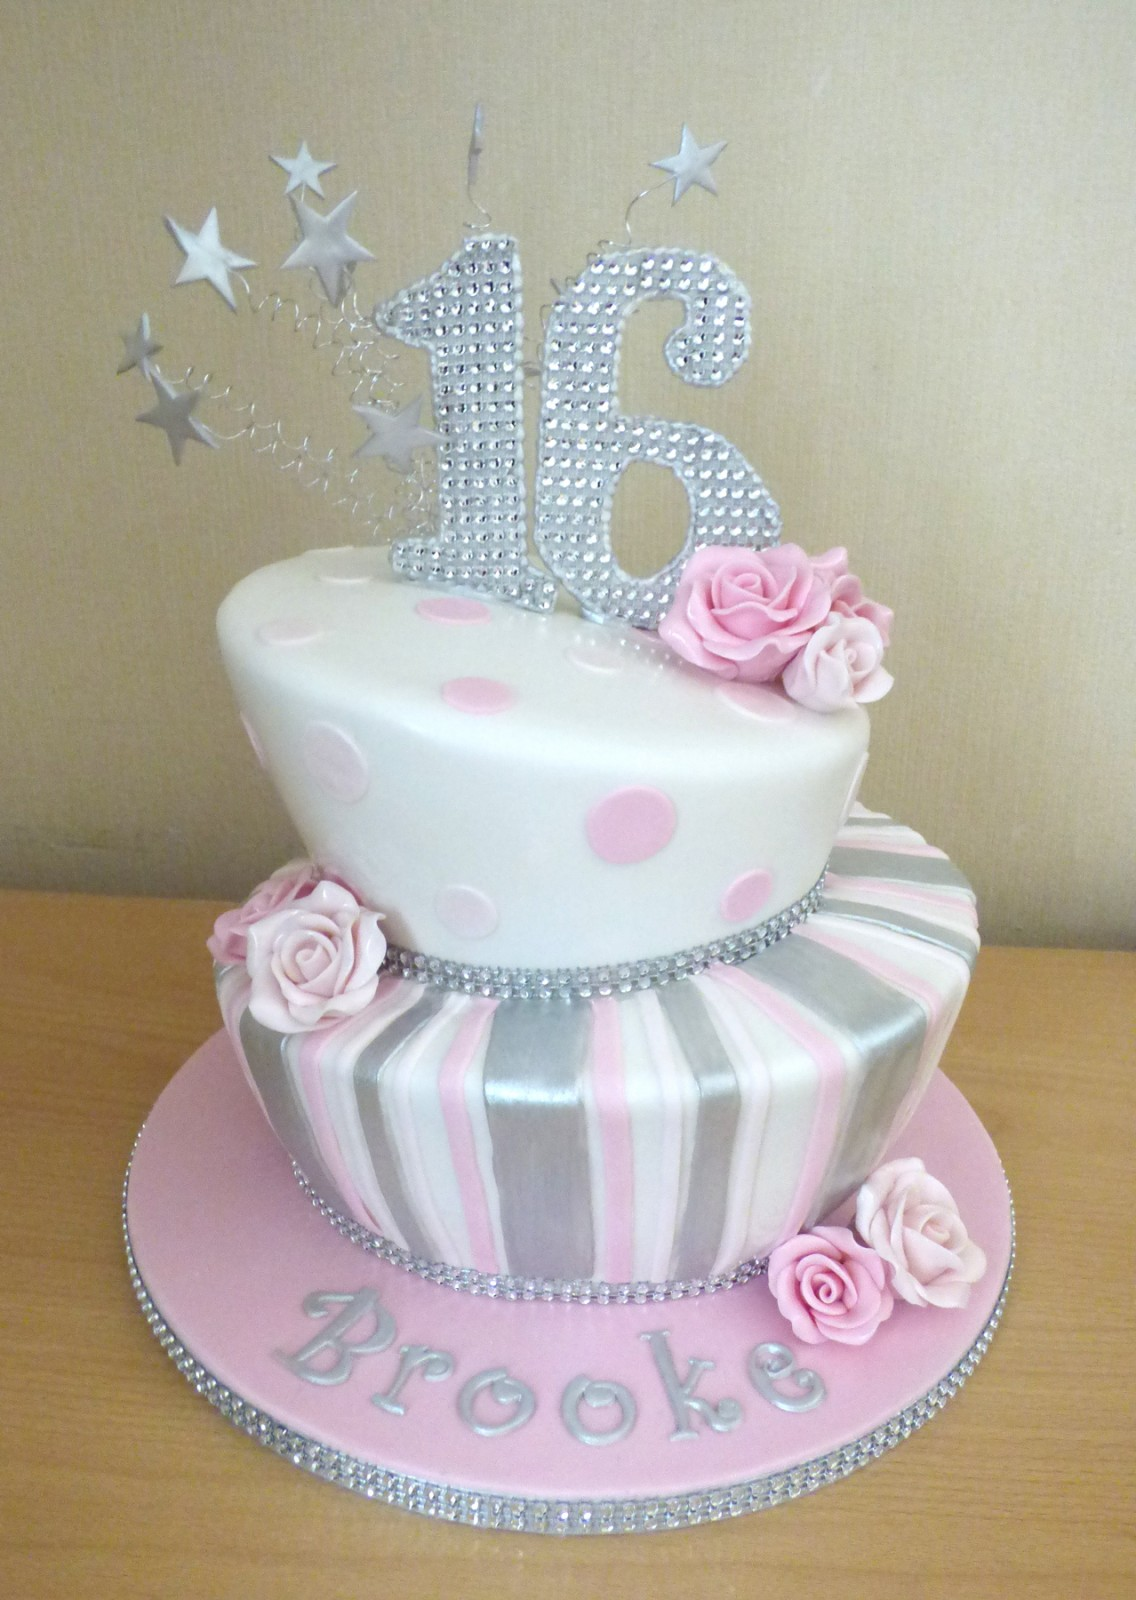 2 Tier Bling Sweet Sixteen Birthday Cake Susie s Cakes